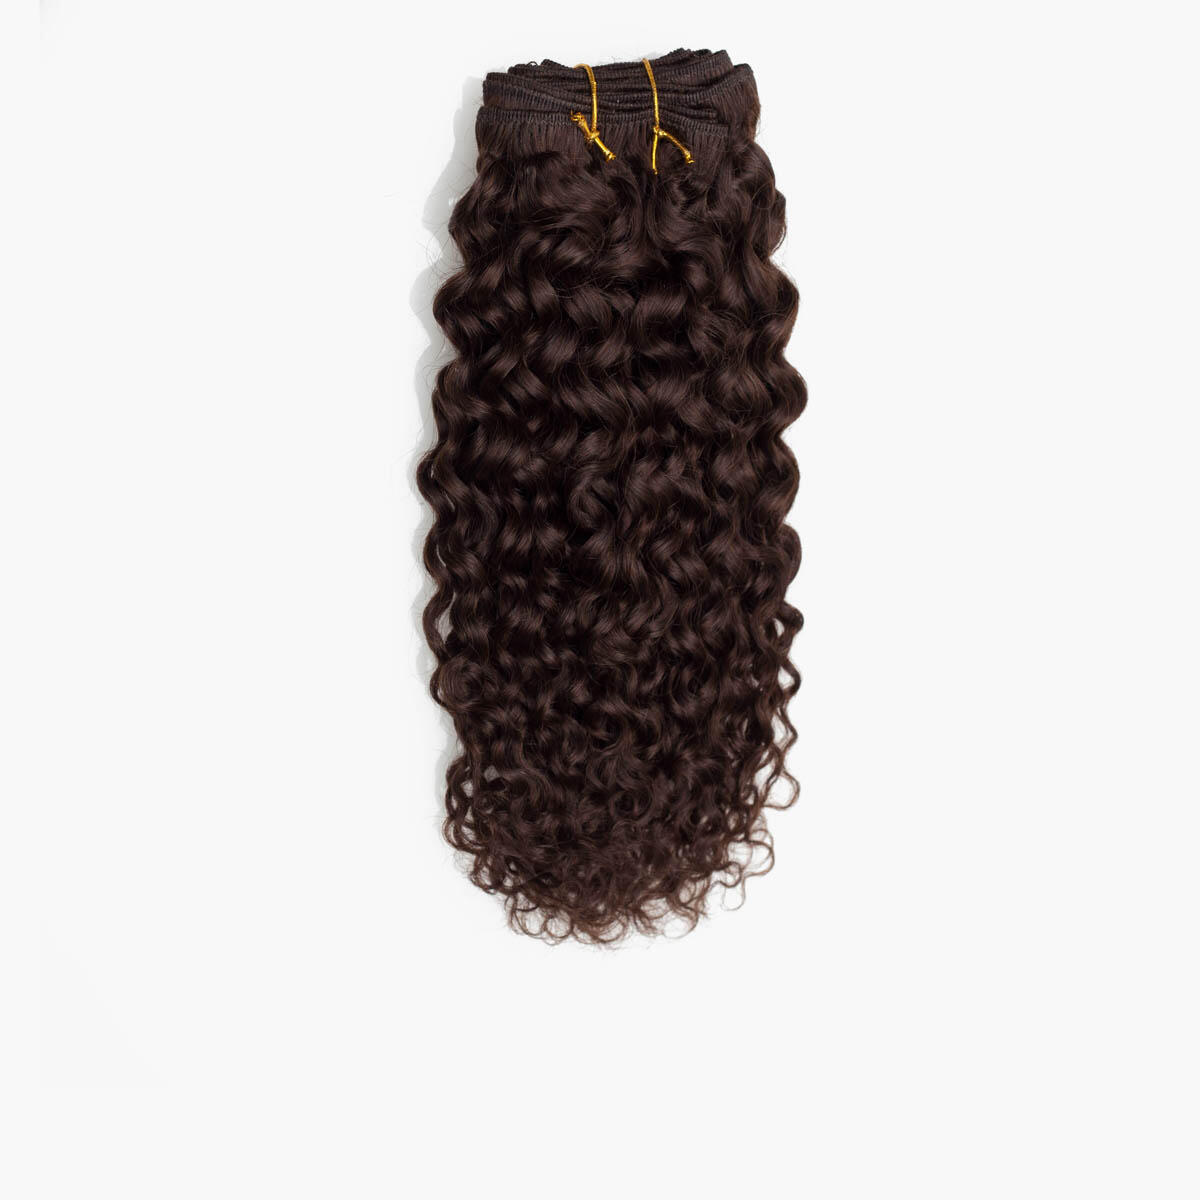 Haartresse Curly Curls 2.2 Coffee Brown 35 cm